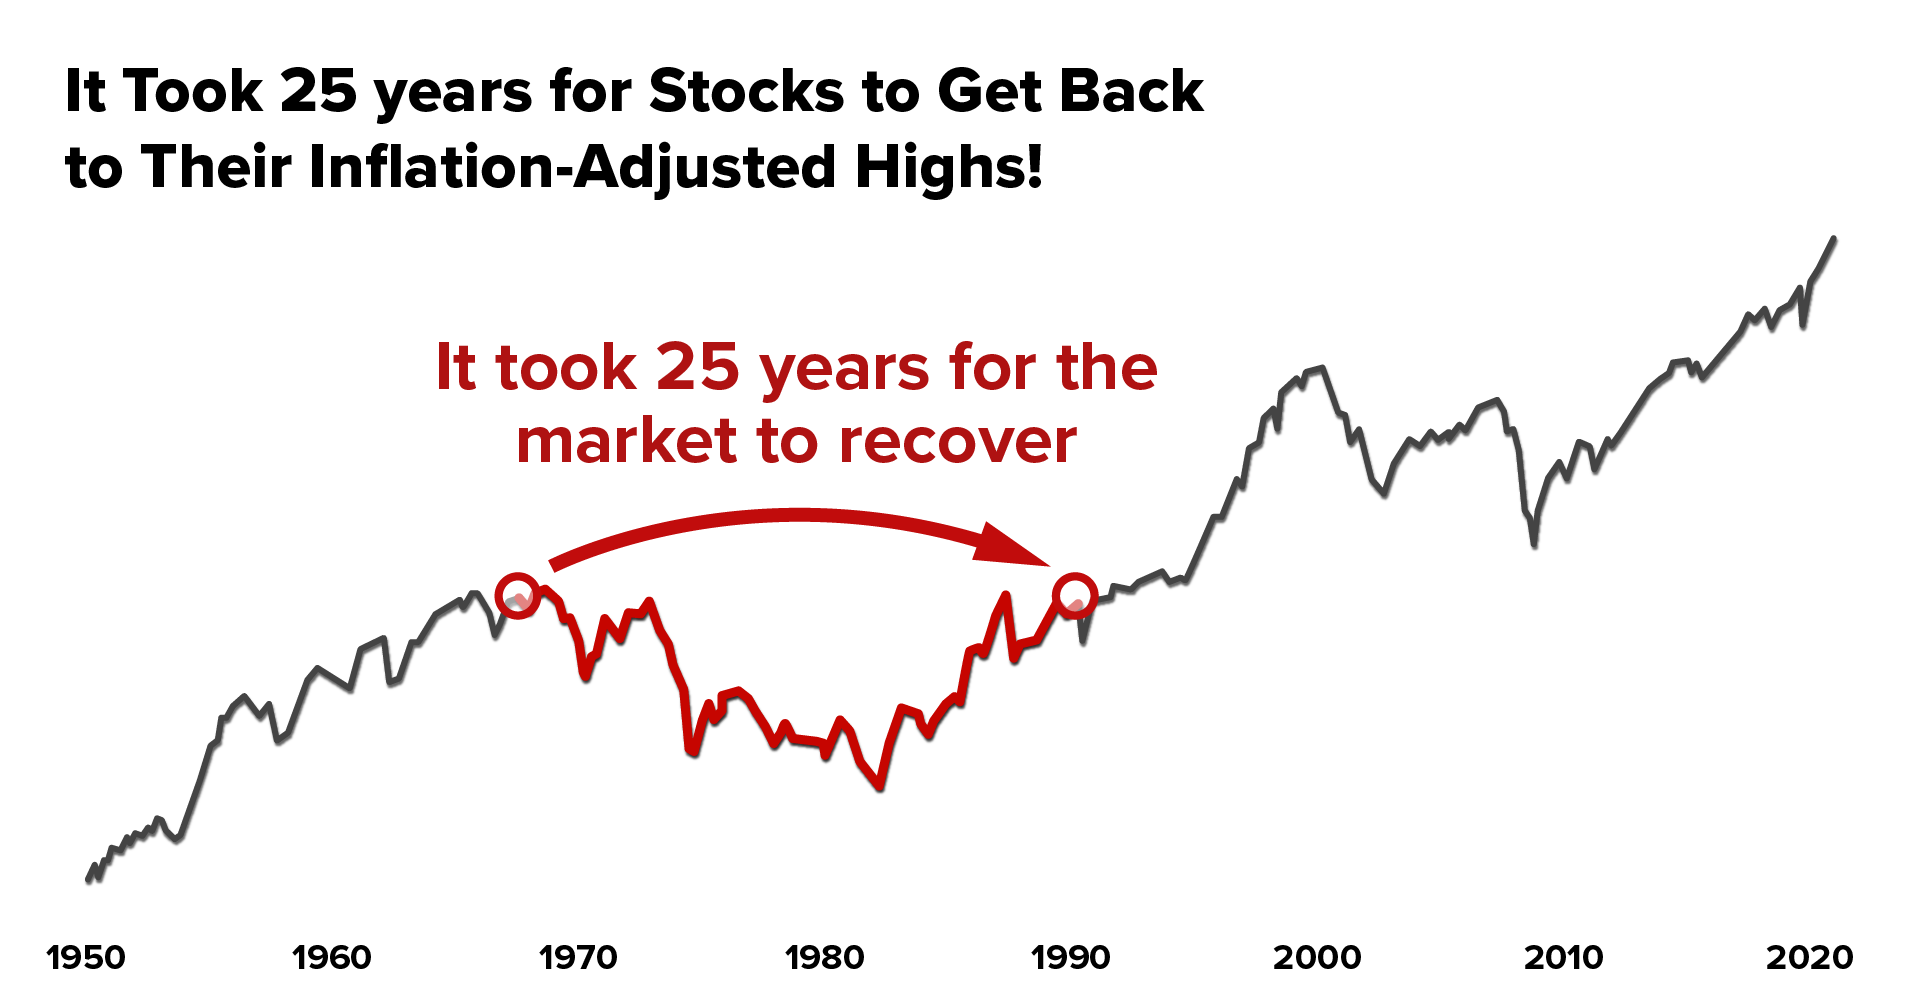 25 Years later- Inflation